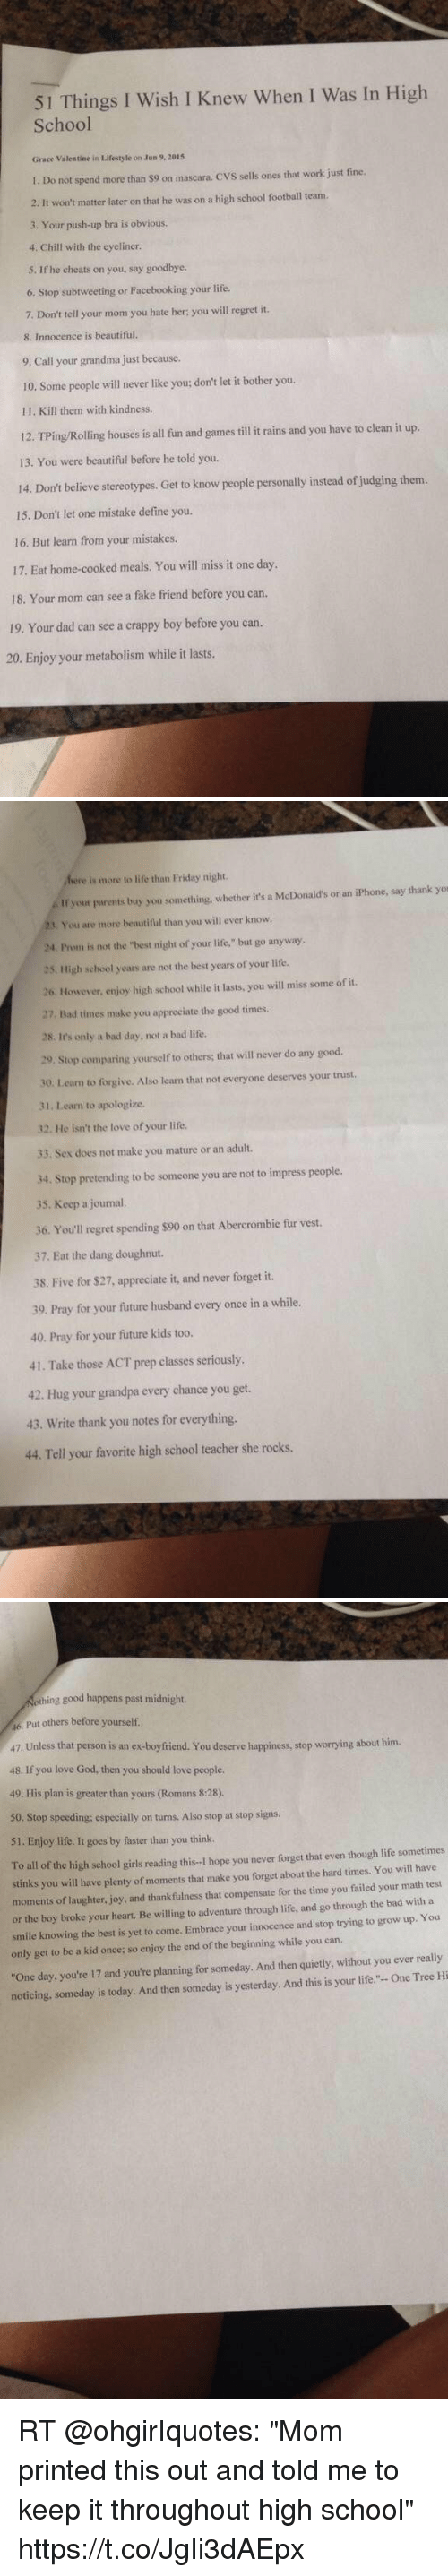 51 Things L Wish I Knew When I Was In High School Grace -6734